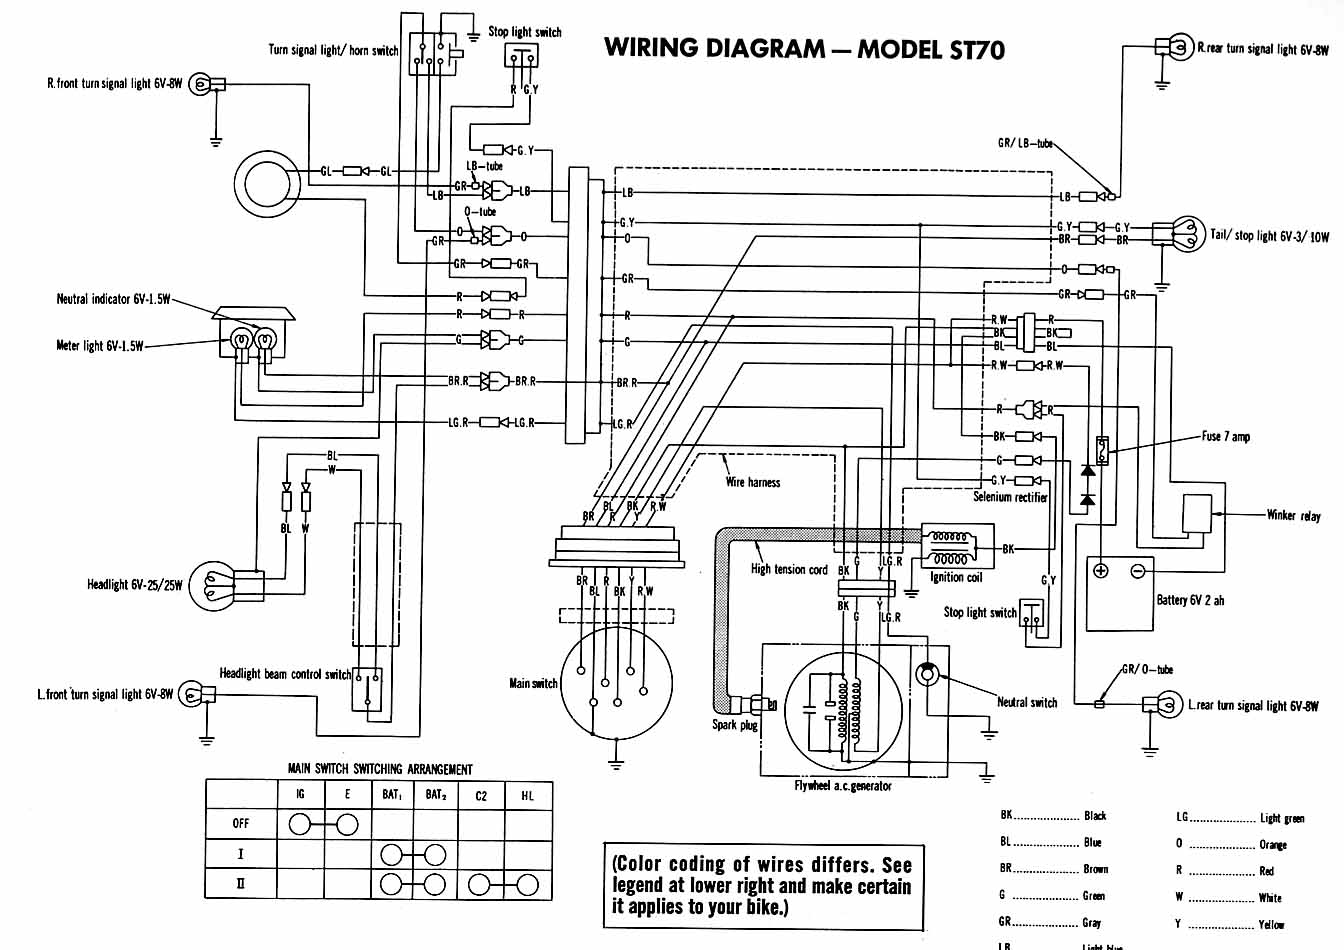 Honda Minimoto Wiring Diagram on 50cc motorcycle